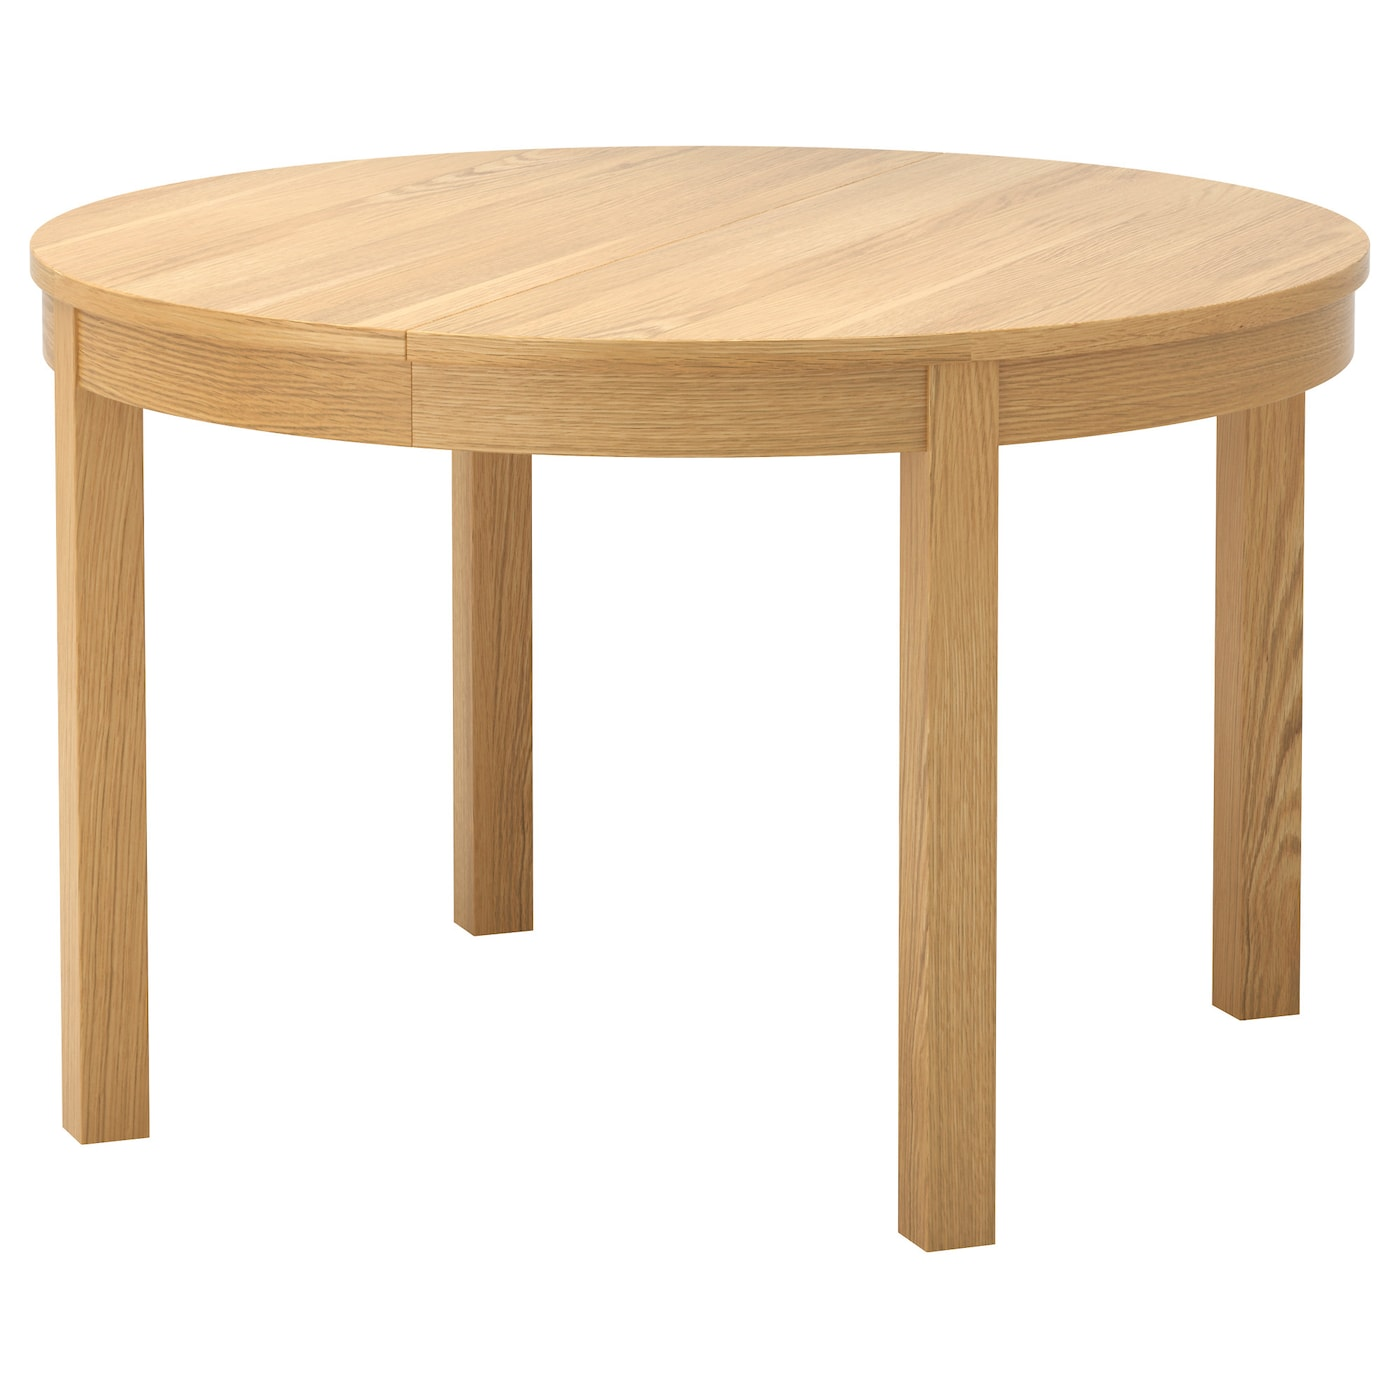 ikea bjursta extendable table 1 extension leaf included